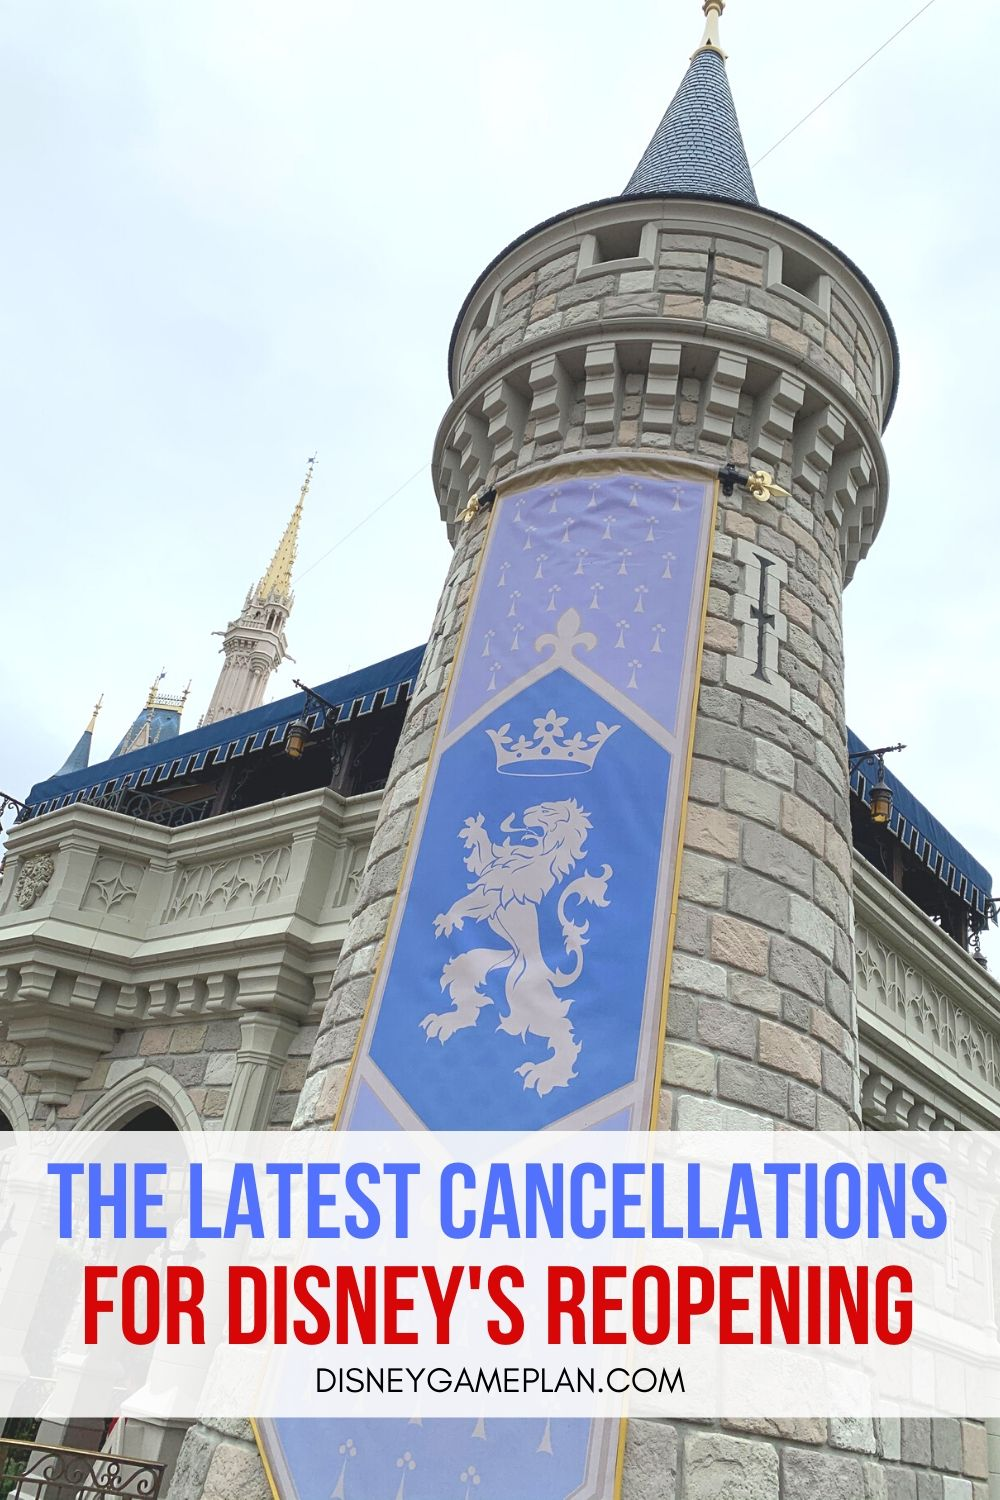 Disney Parks Announces Disney World Cancellations for Phased Reopening starting July 11, 2020. Find out what experiences Disney World is canceling and changing.